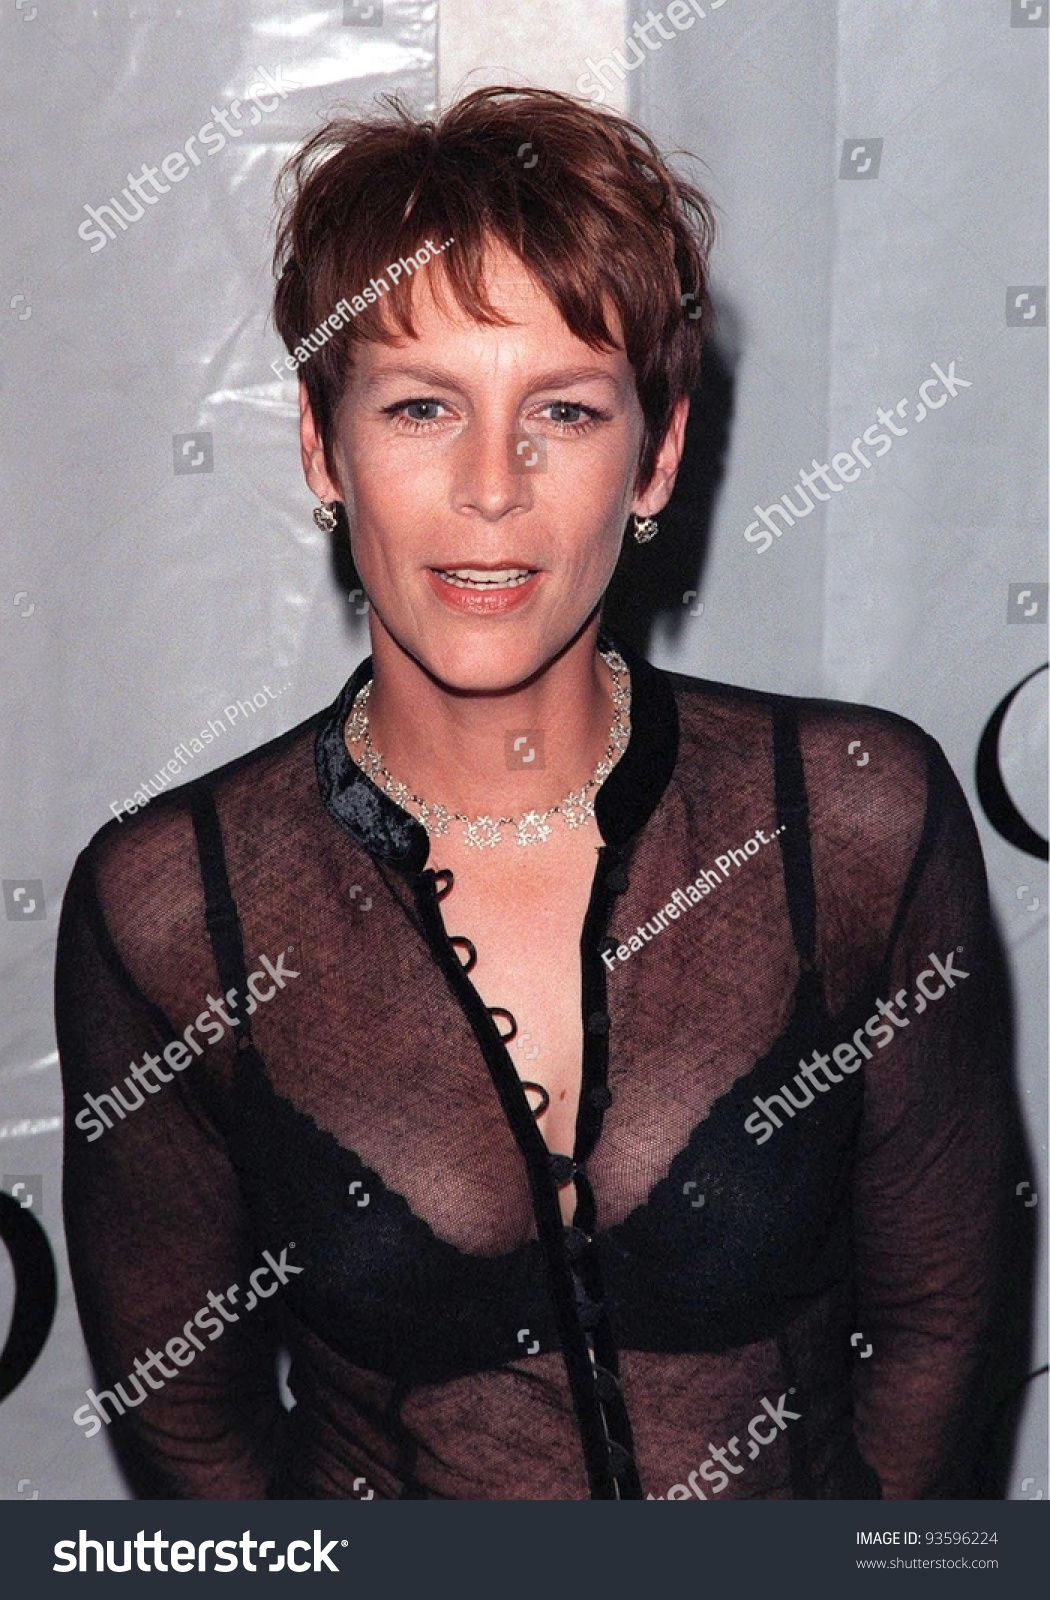 20APR98: Actress JAMIE LEE CURTIS at the 9th Annual GLAAD (Gay & Lesbian  Alliance